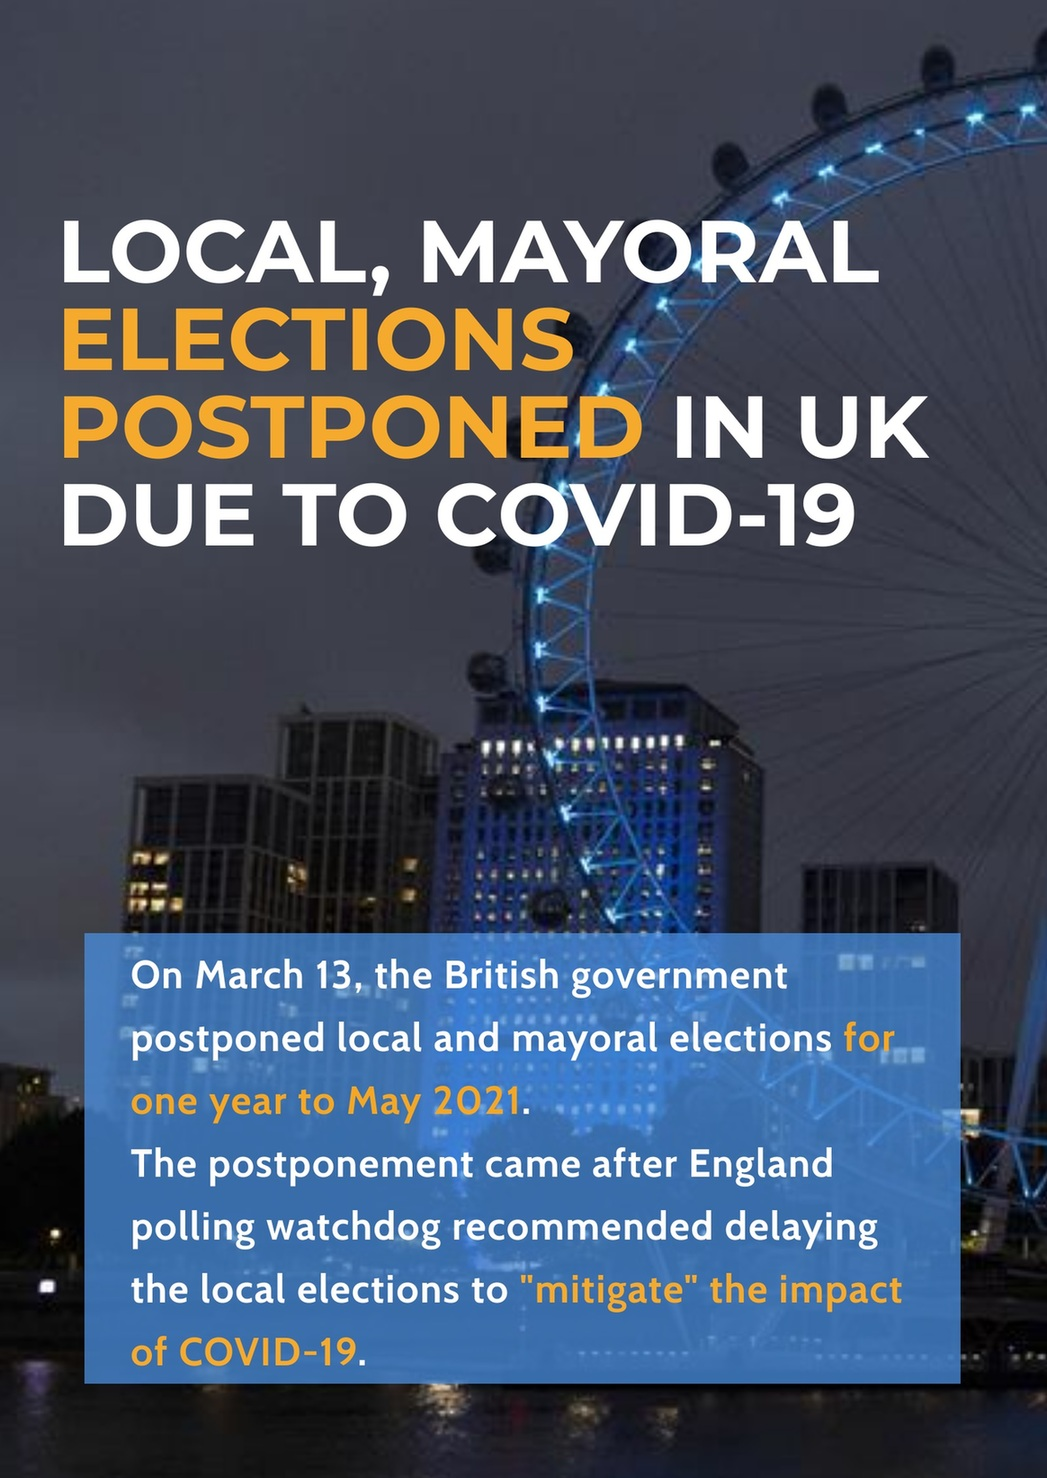 Local, mayoral elections postponed in UK due to COVID-19